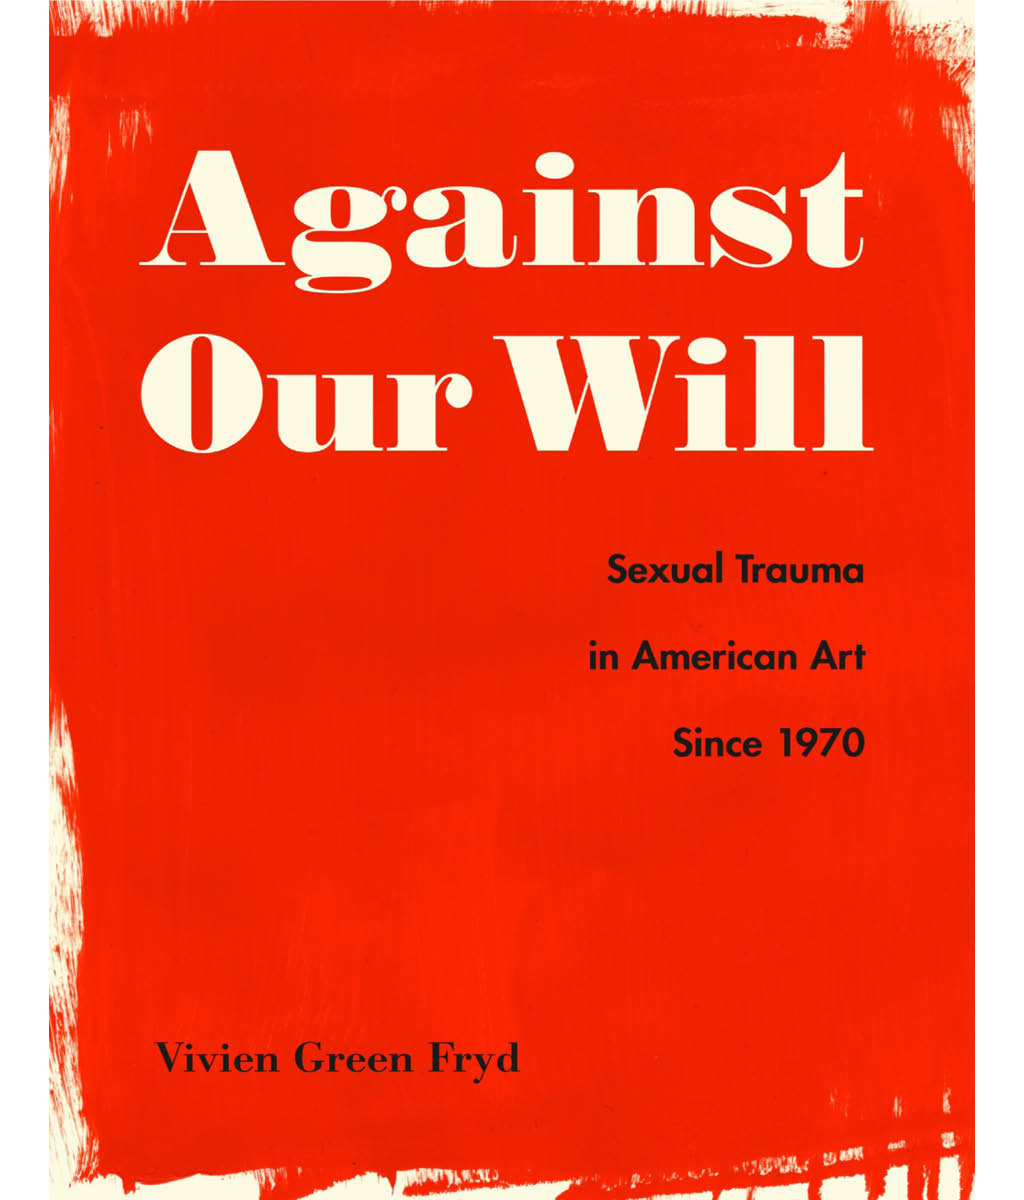 Against Our Will Vivien Green Fryd